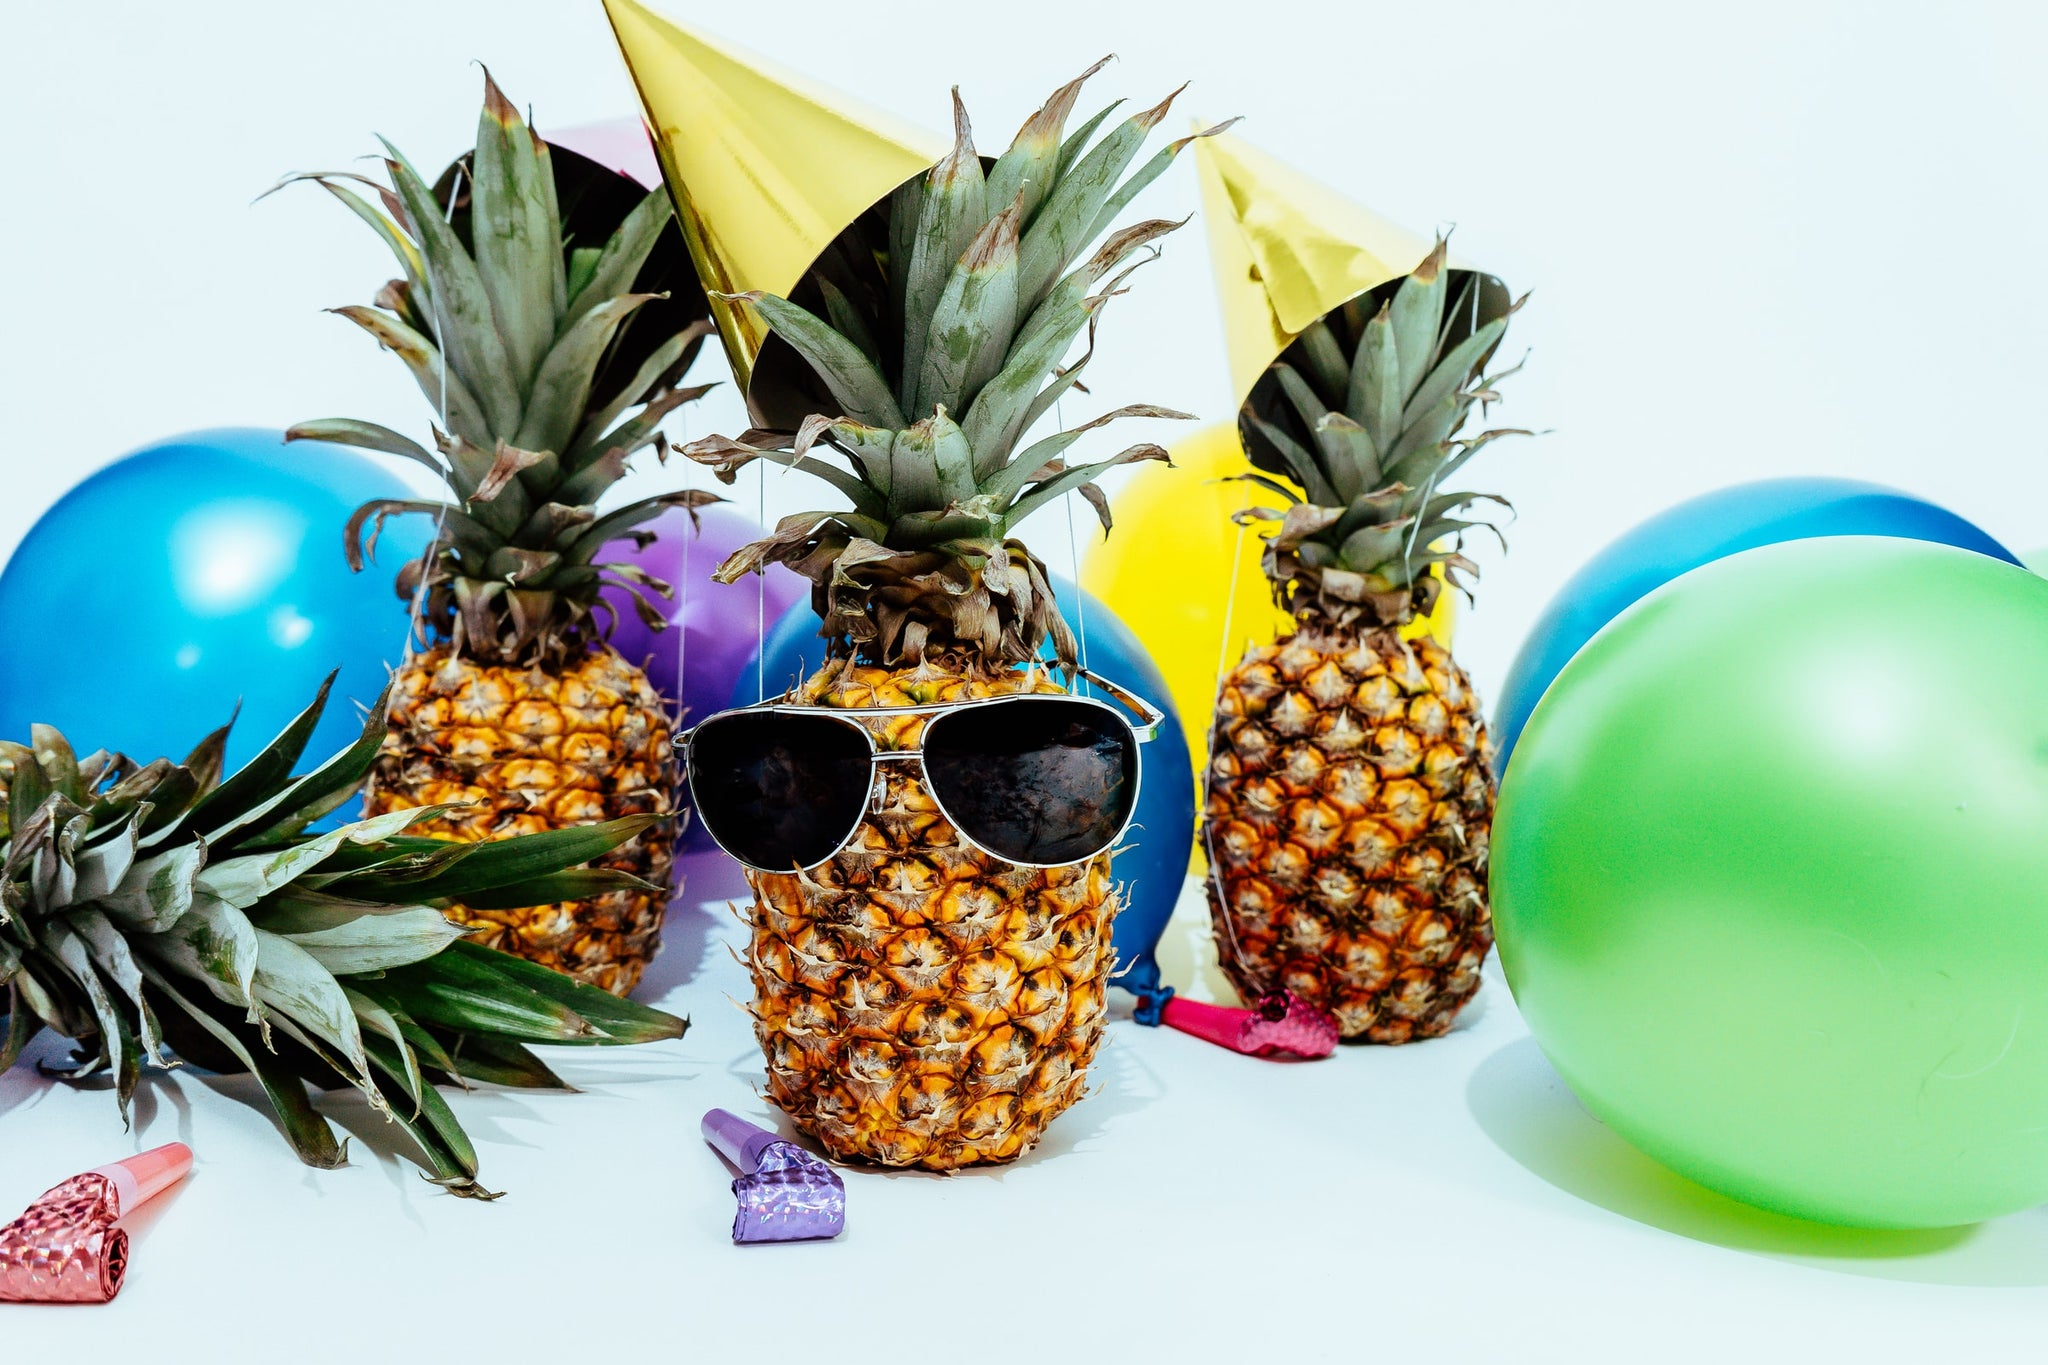 FUN IN THE SUN WITH SUMMER'S HOTTEST PARTY TRENDS